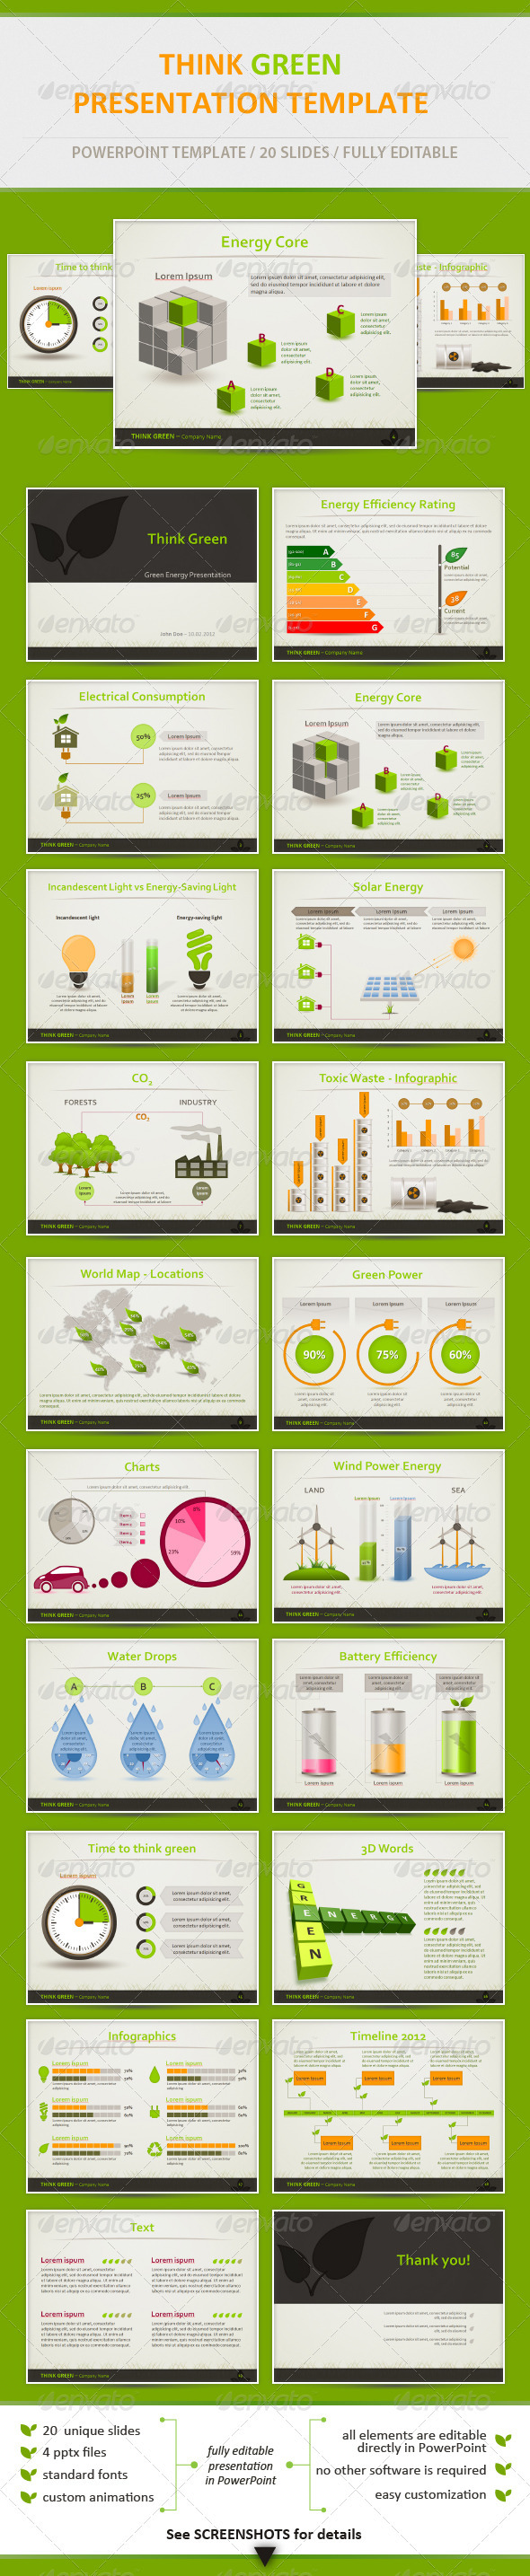 Graphic River Think Green Eco Friendly Presentation Template Presentation Templates -  Powerpoint Templates 1513908